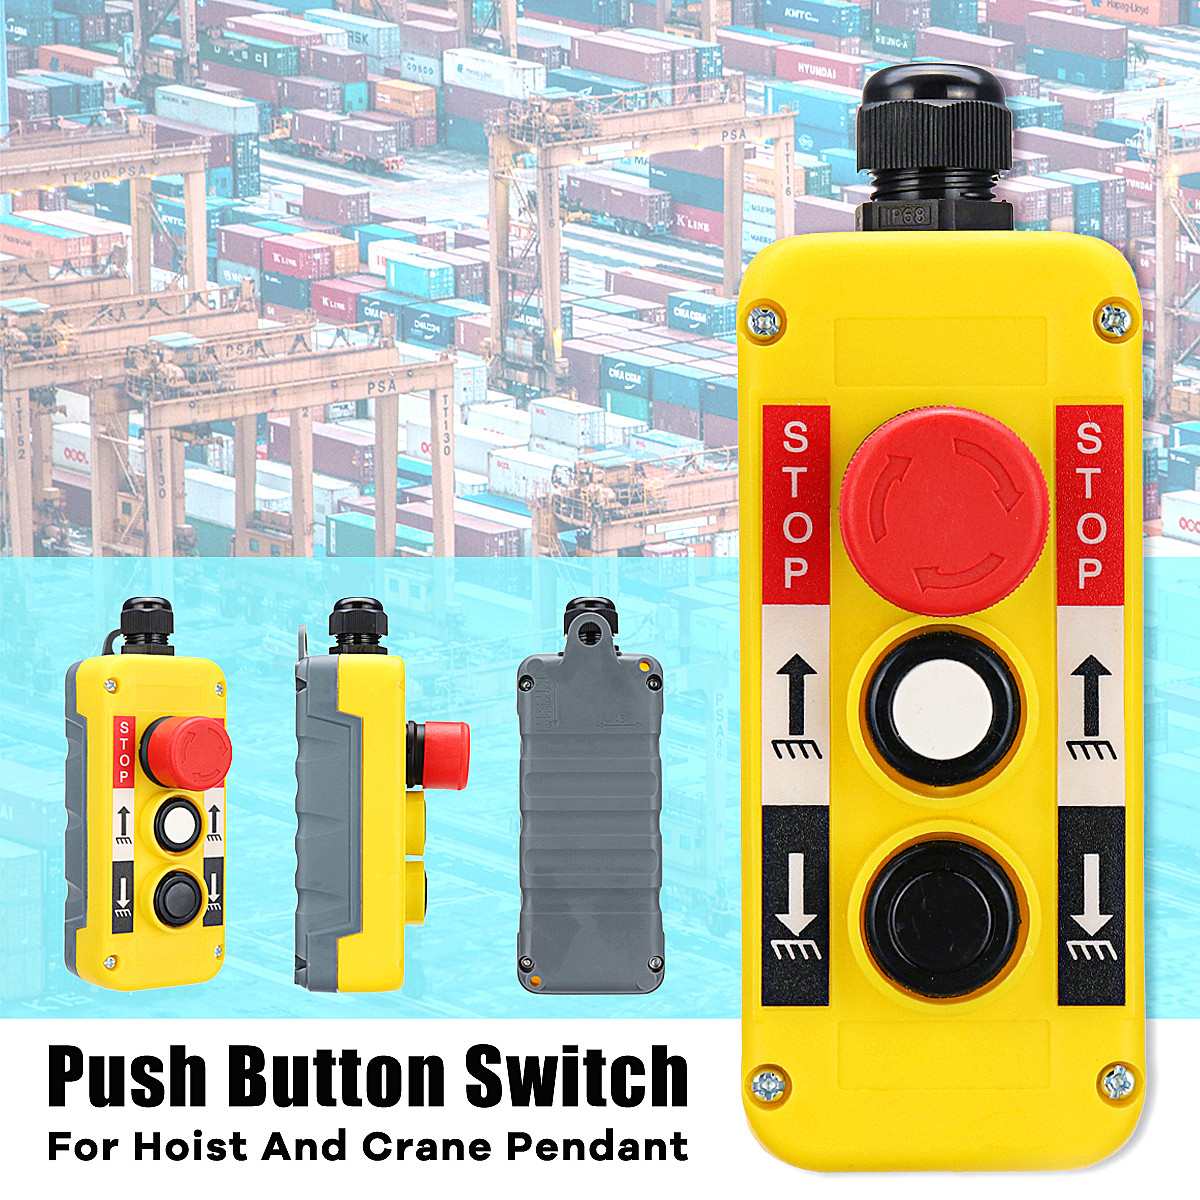 Push Button Switch With Emergency Stop For Hoist Crane Pendant Control Station